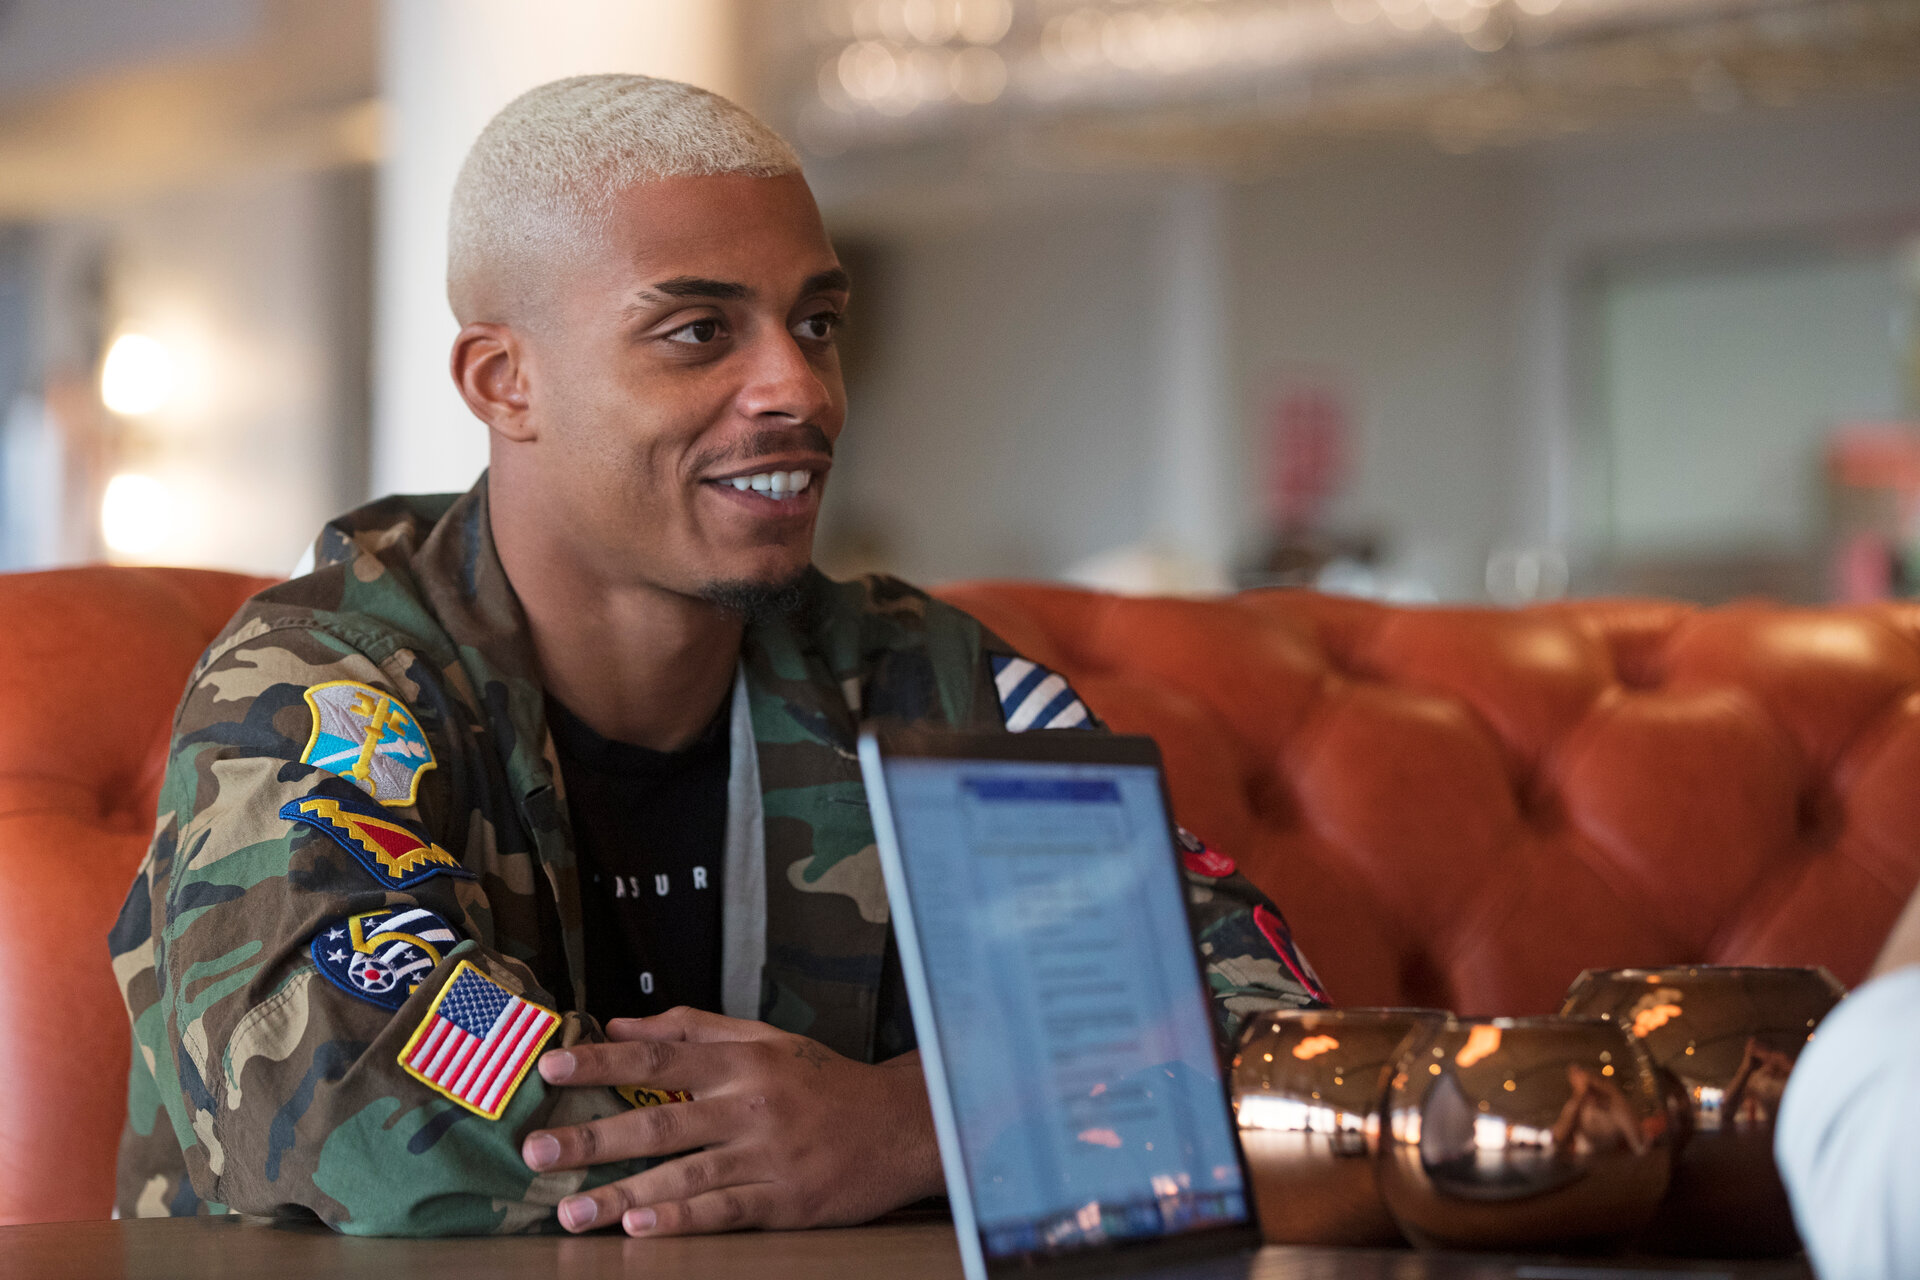 SOUTHAMPTON, ENGLAND - NOVEMBER 22: Southampton FC's Mario Lemina pictured at Southampton's new five-star hotel The Southampton Harbour Hotel, for the club's matchday magazine, on November 22, 2017 in Southampton, England. (Photo by Matt Watson/Southampton FC via Getty Images)